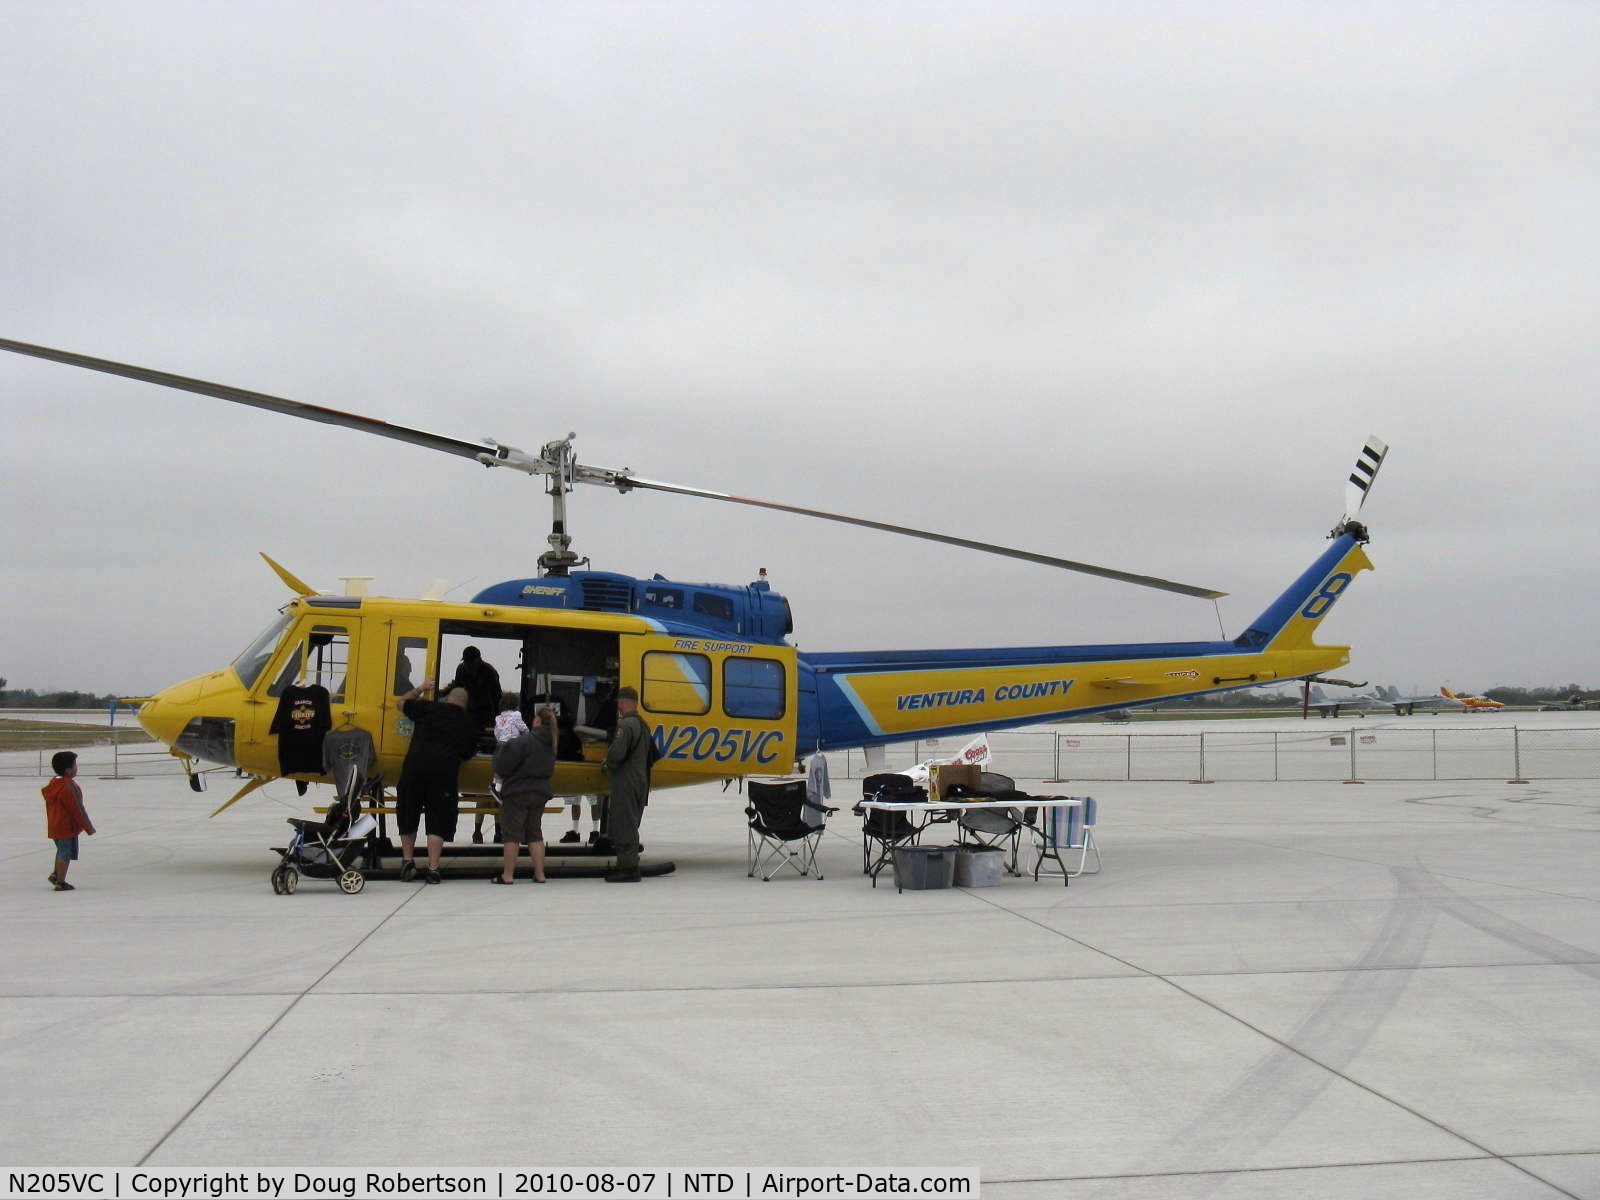 N205VC, 1969 Bell 205A-1 C/N 30066, 1969 Bell 205A-1, one 1,400 shp AVCO Lycoming TS313A Turboshaft derated to 1,250 shp for takeoff. Ventura County Sheriff's Department #8